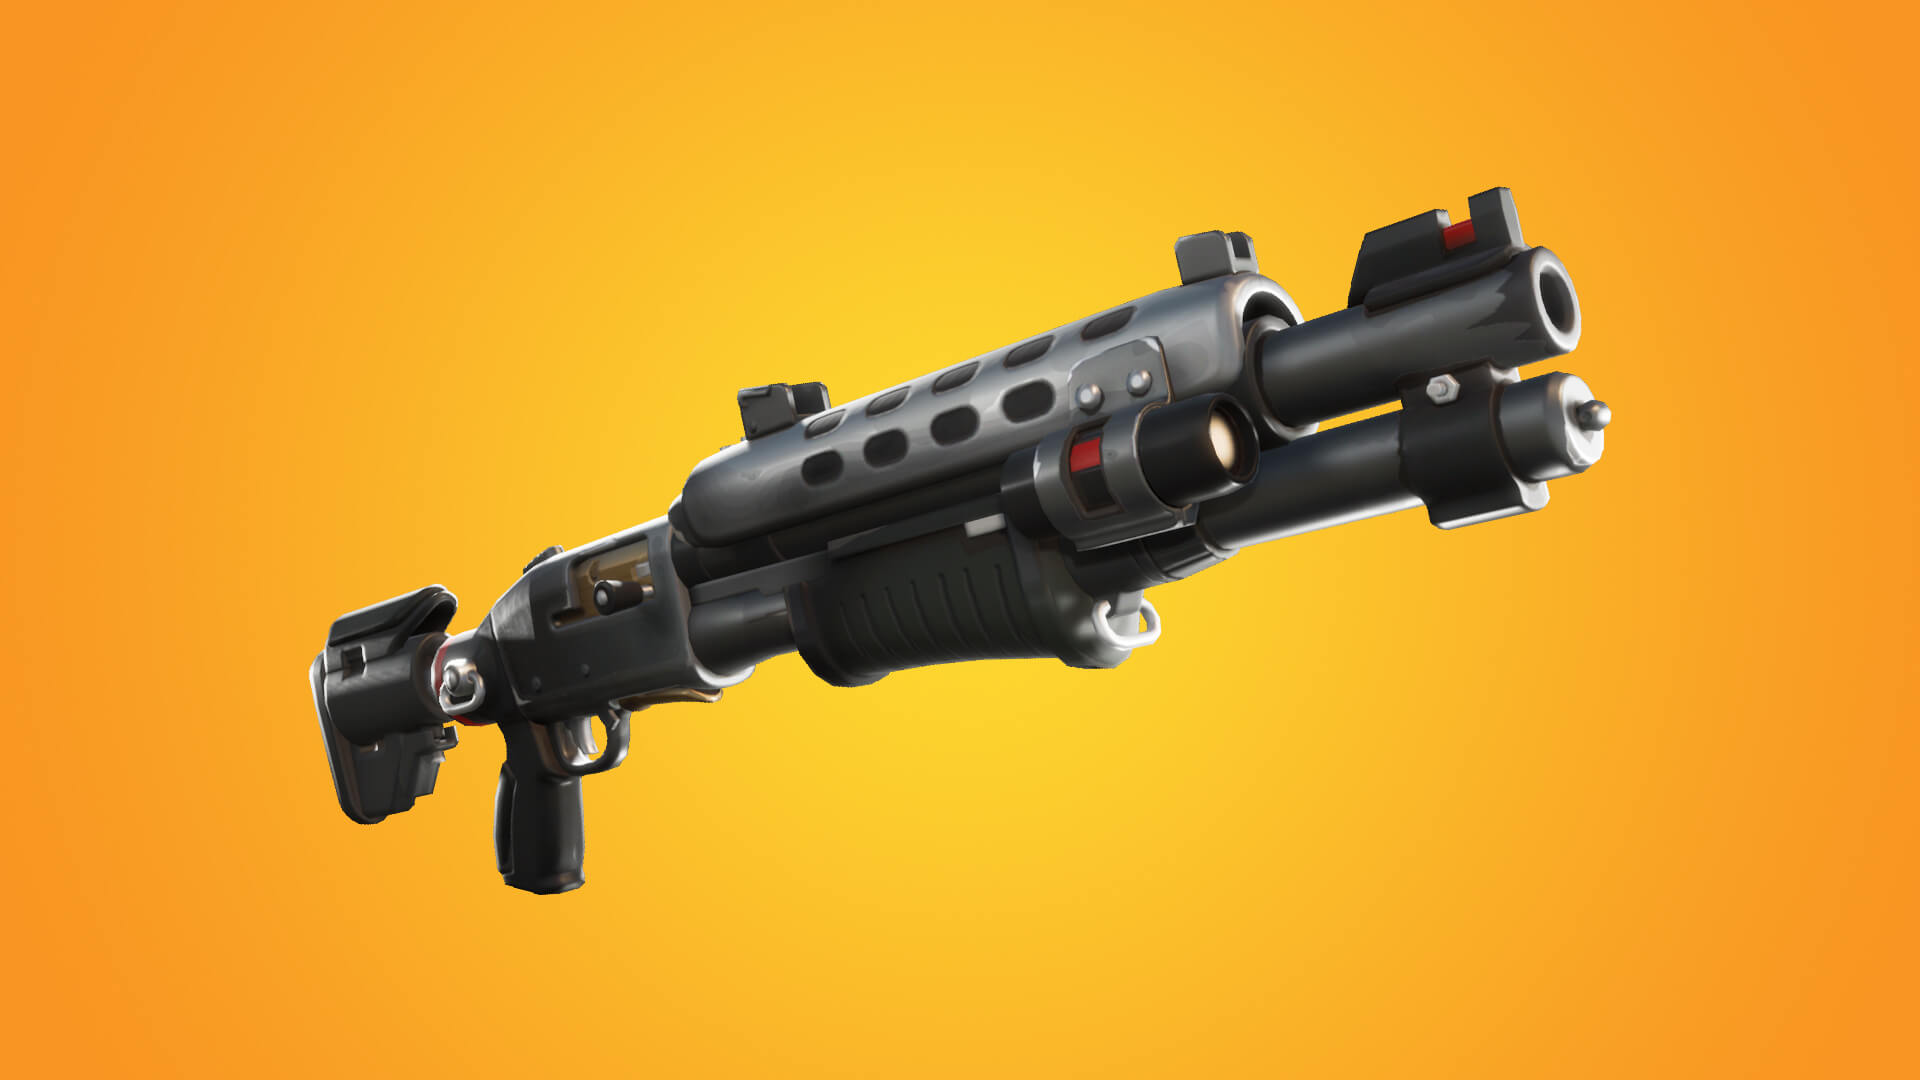 Fortnite Patch Notes 2.28 – Update 9.40 adds New Tactical Shotgun